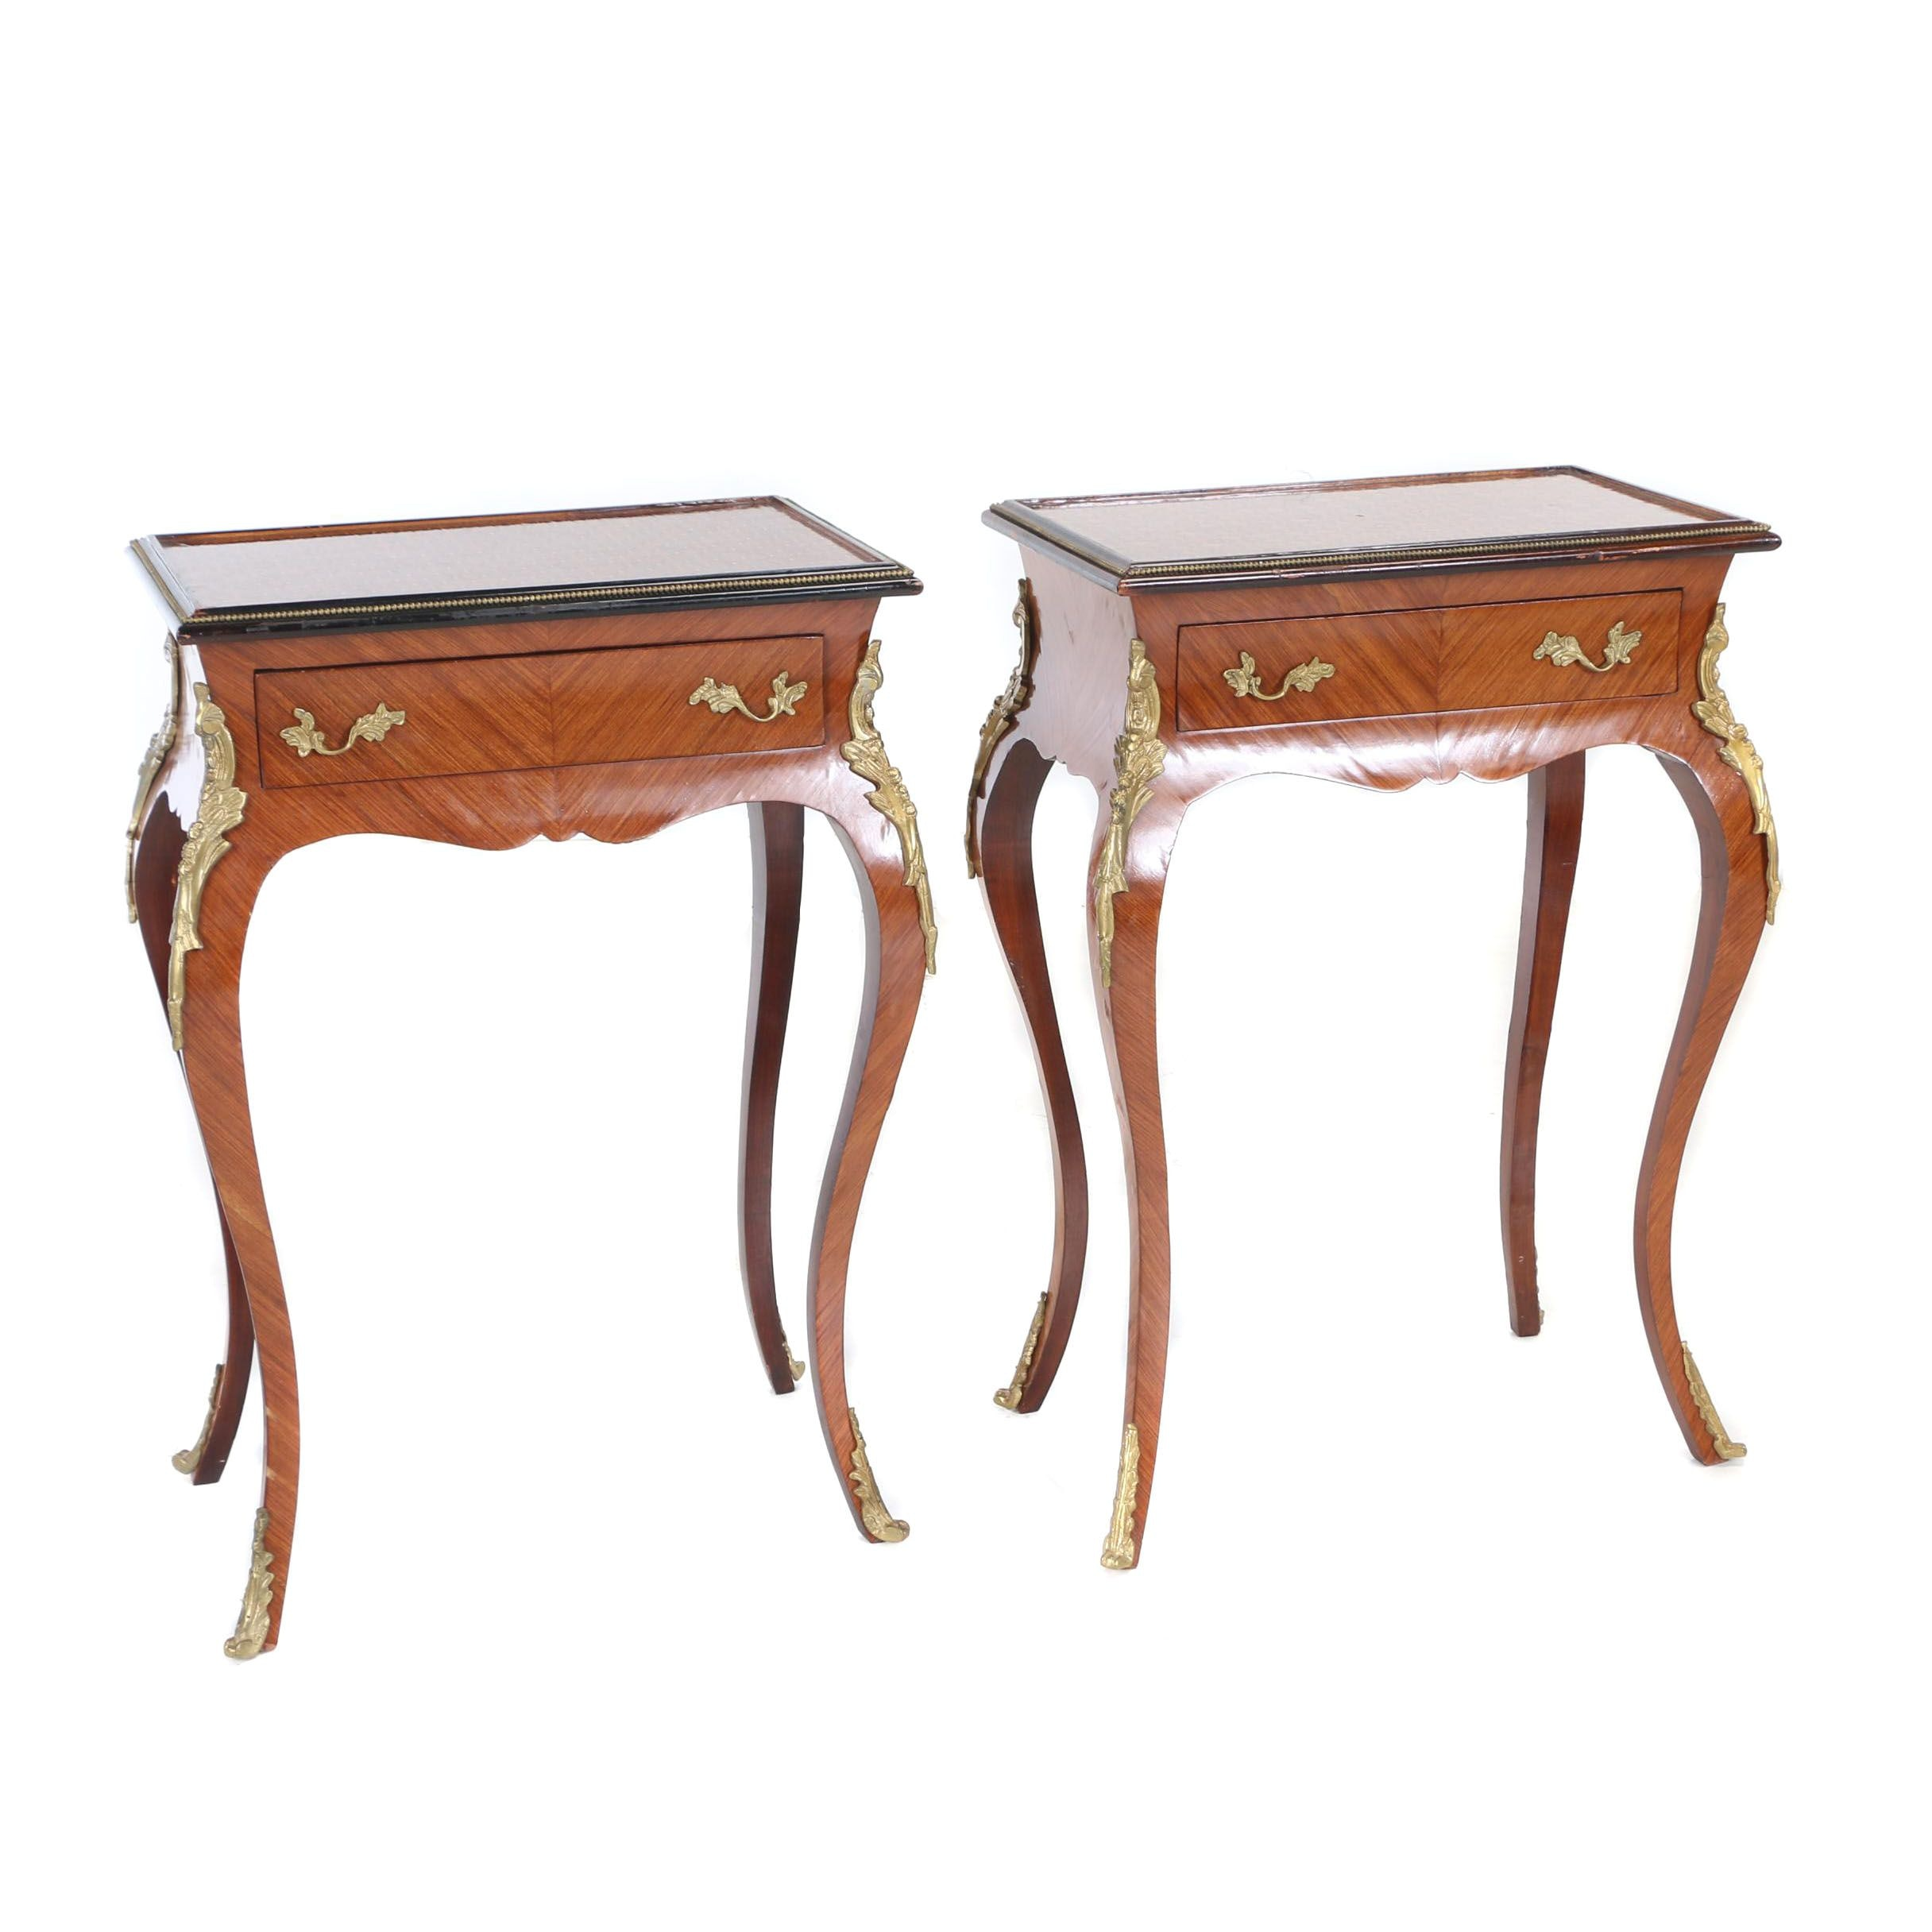 Pair of Louis XV Style Parquetry-Top & Gilt-Metal Side Tables, Late 20th Century